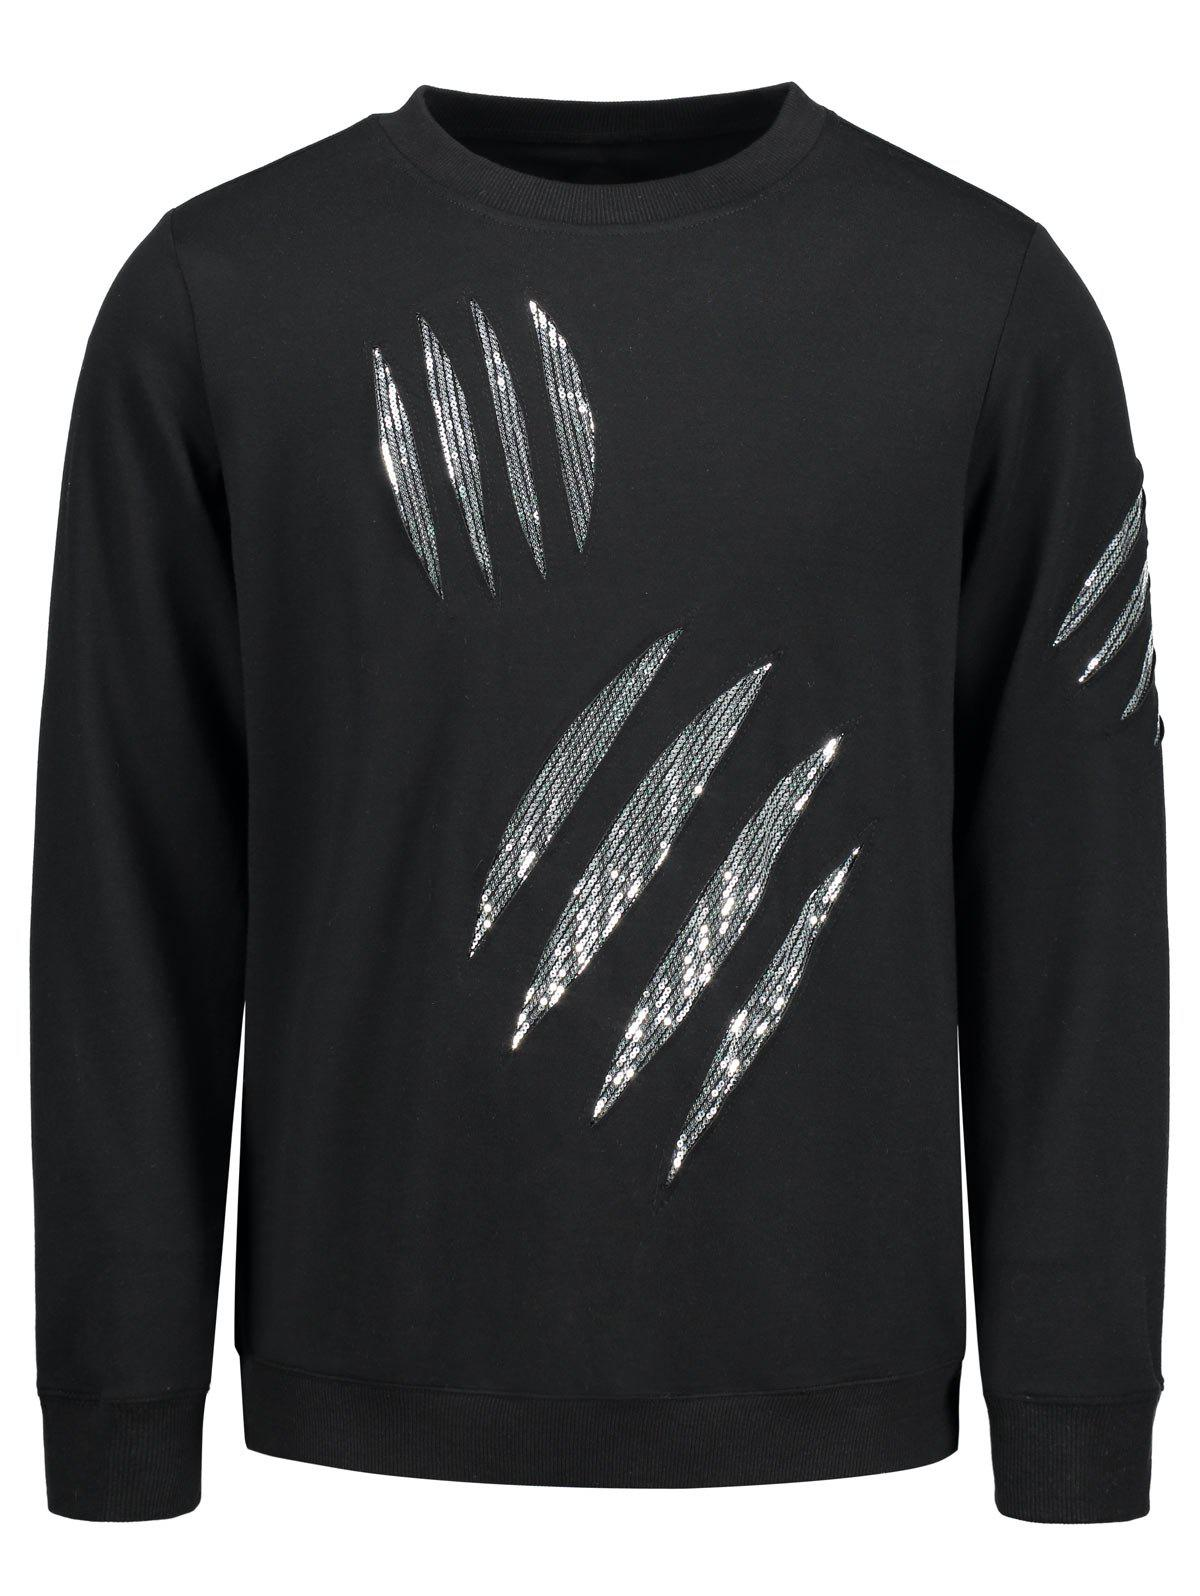 Sequins Insert Crew Neck Sweatshirt - BLACK M